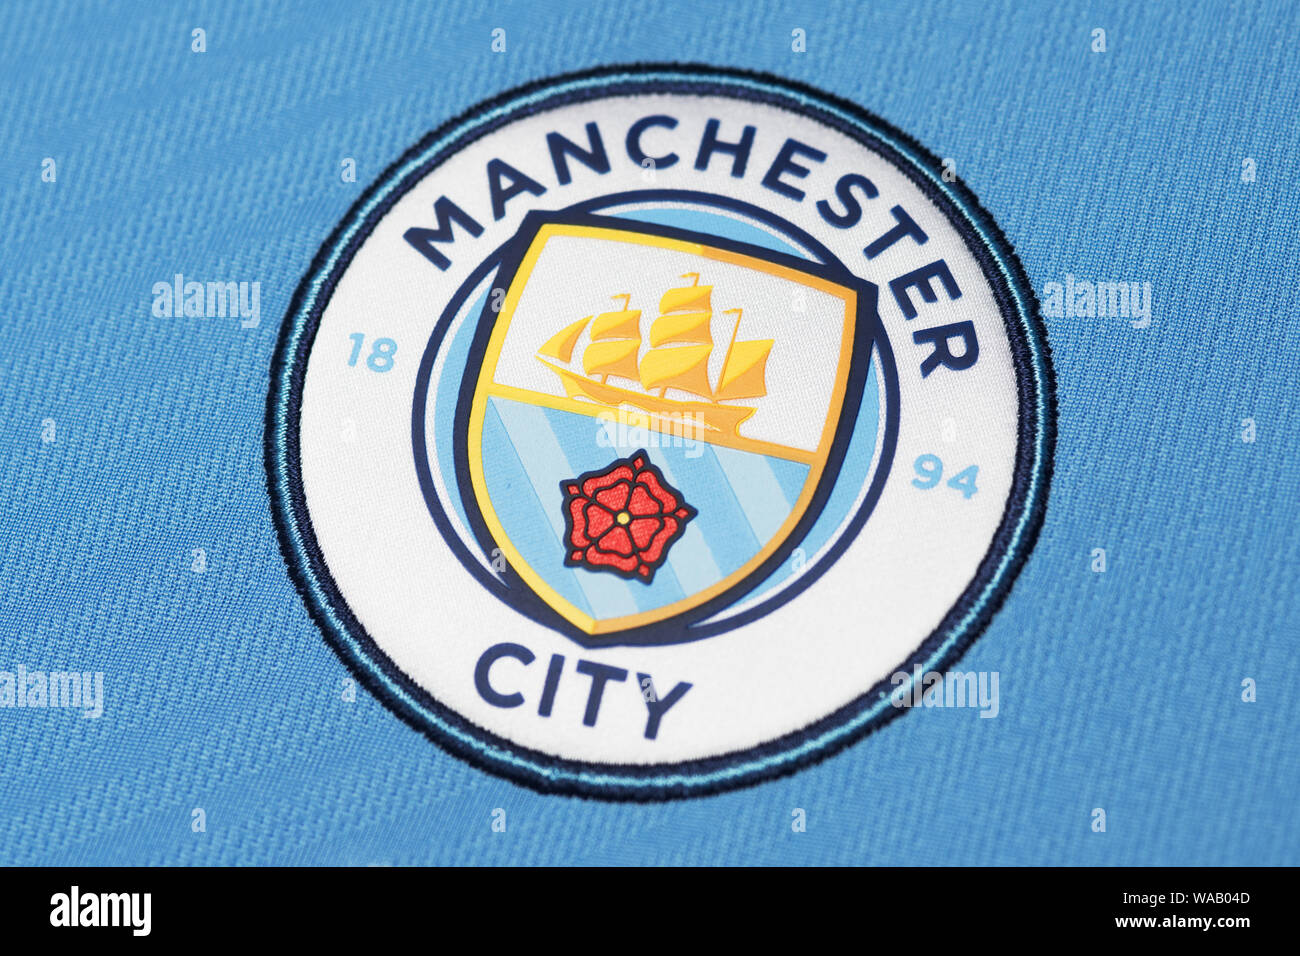 Manchester City Football Club Badge High Resolution Stock Photography And Images Alamy